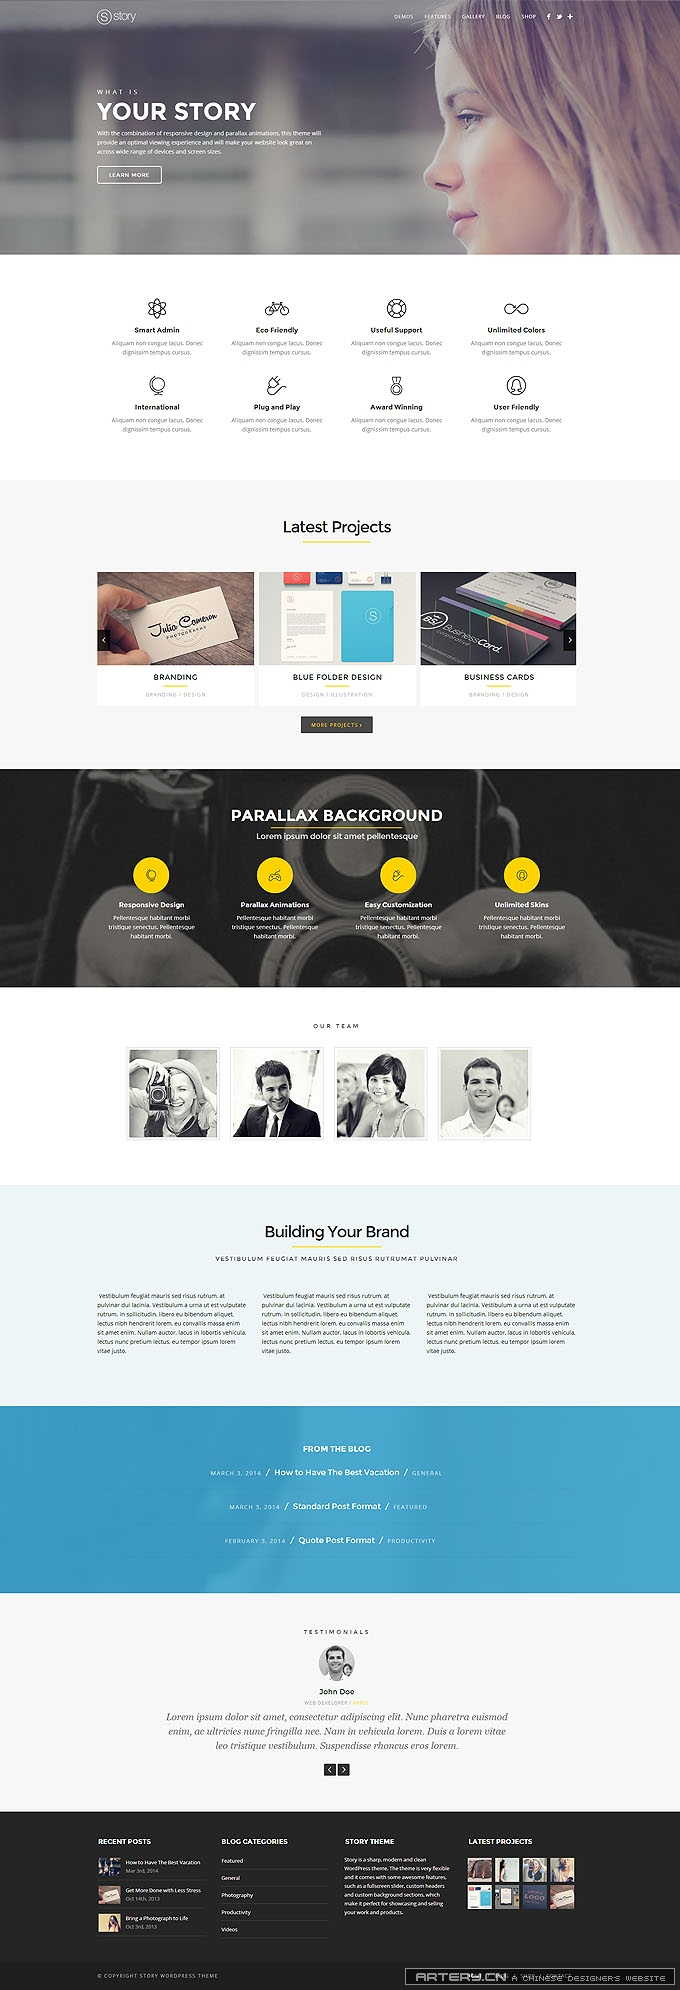 Home – default   Story WordPress Theme_20140701092204.jpg